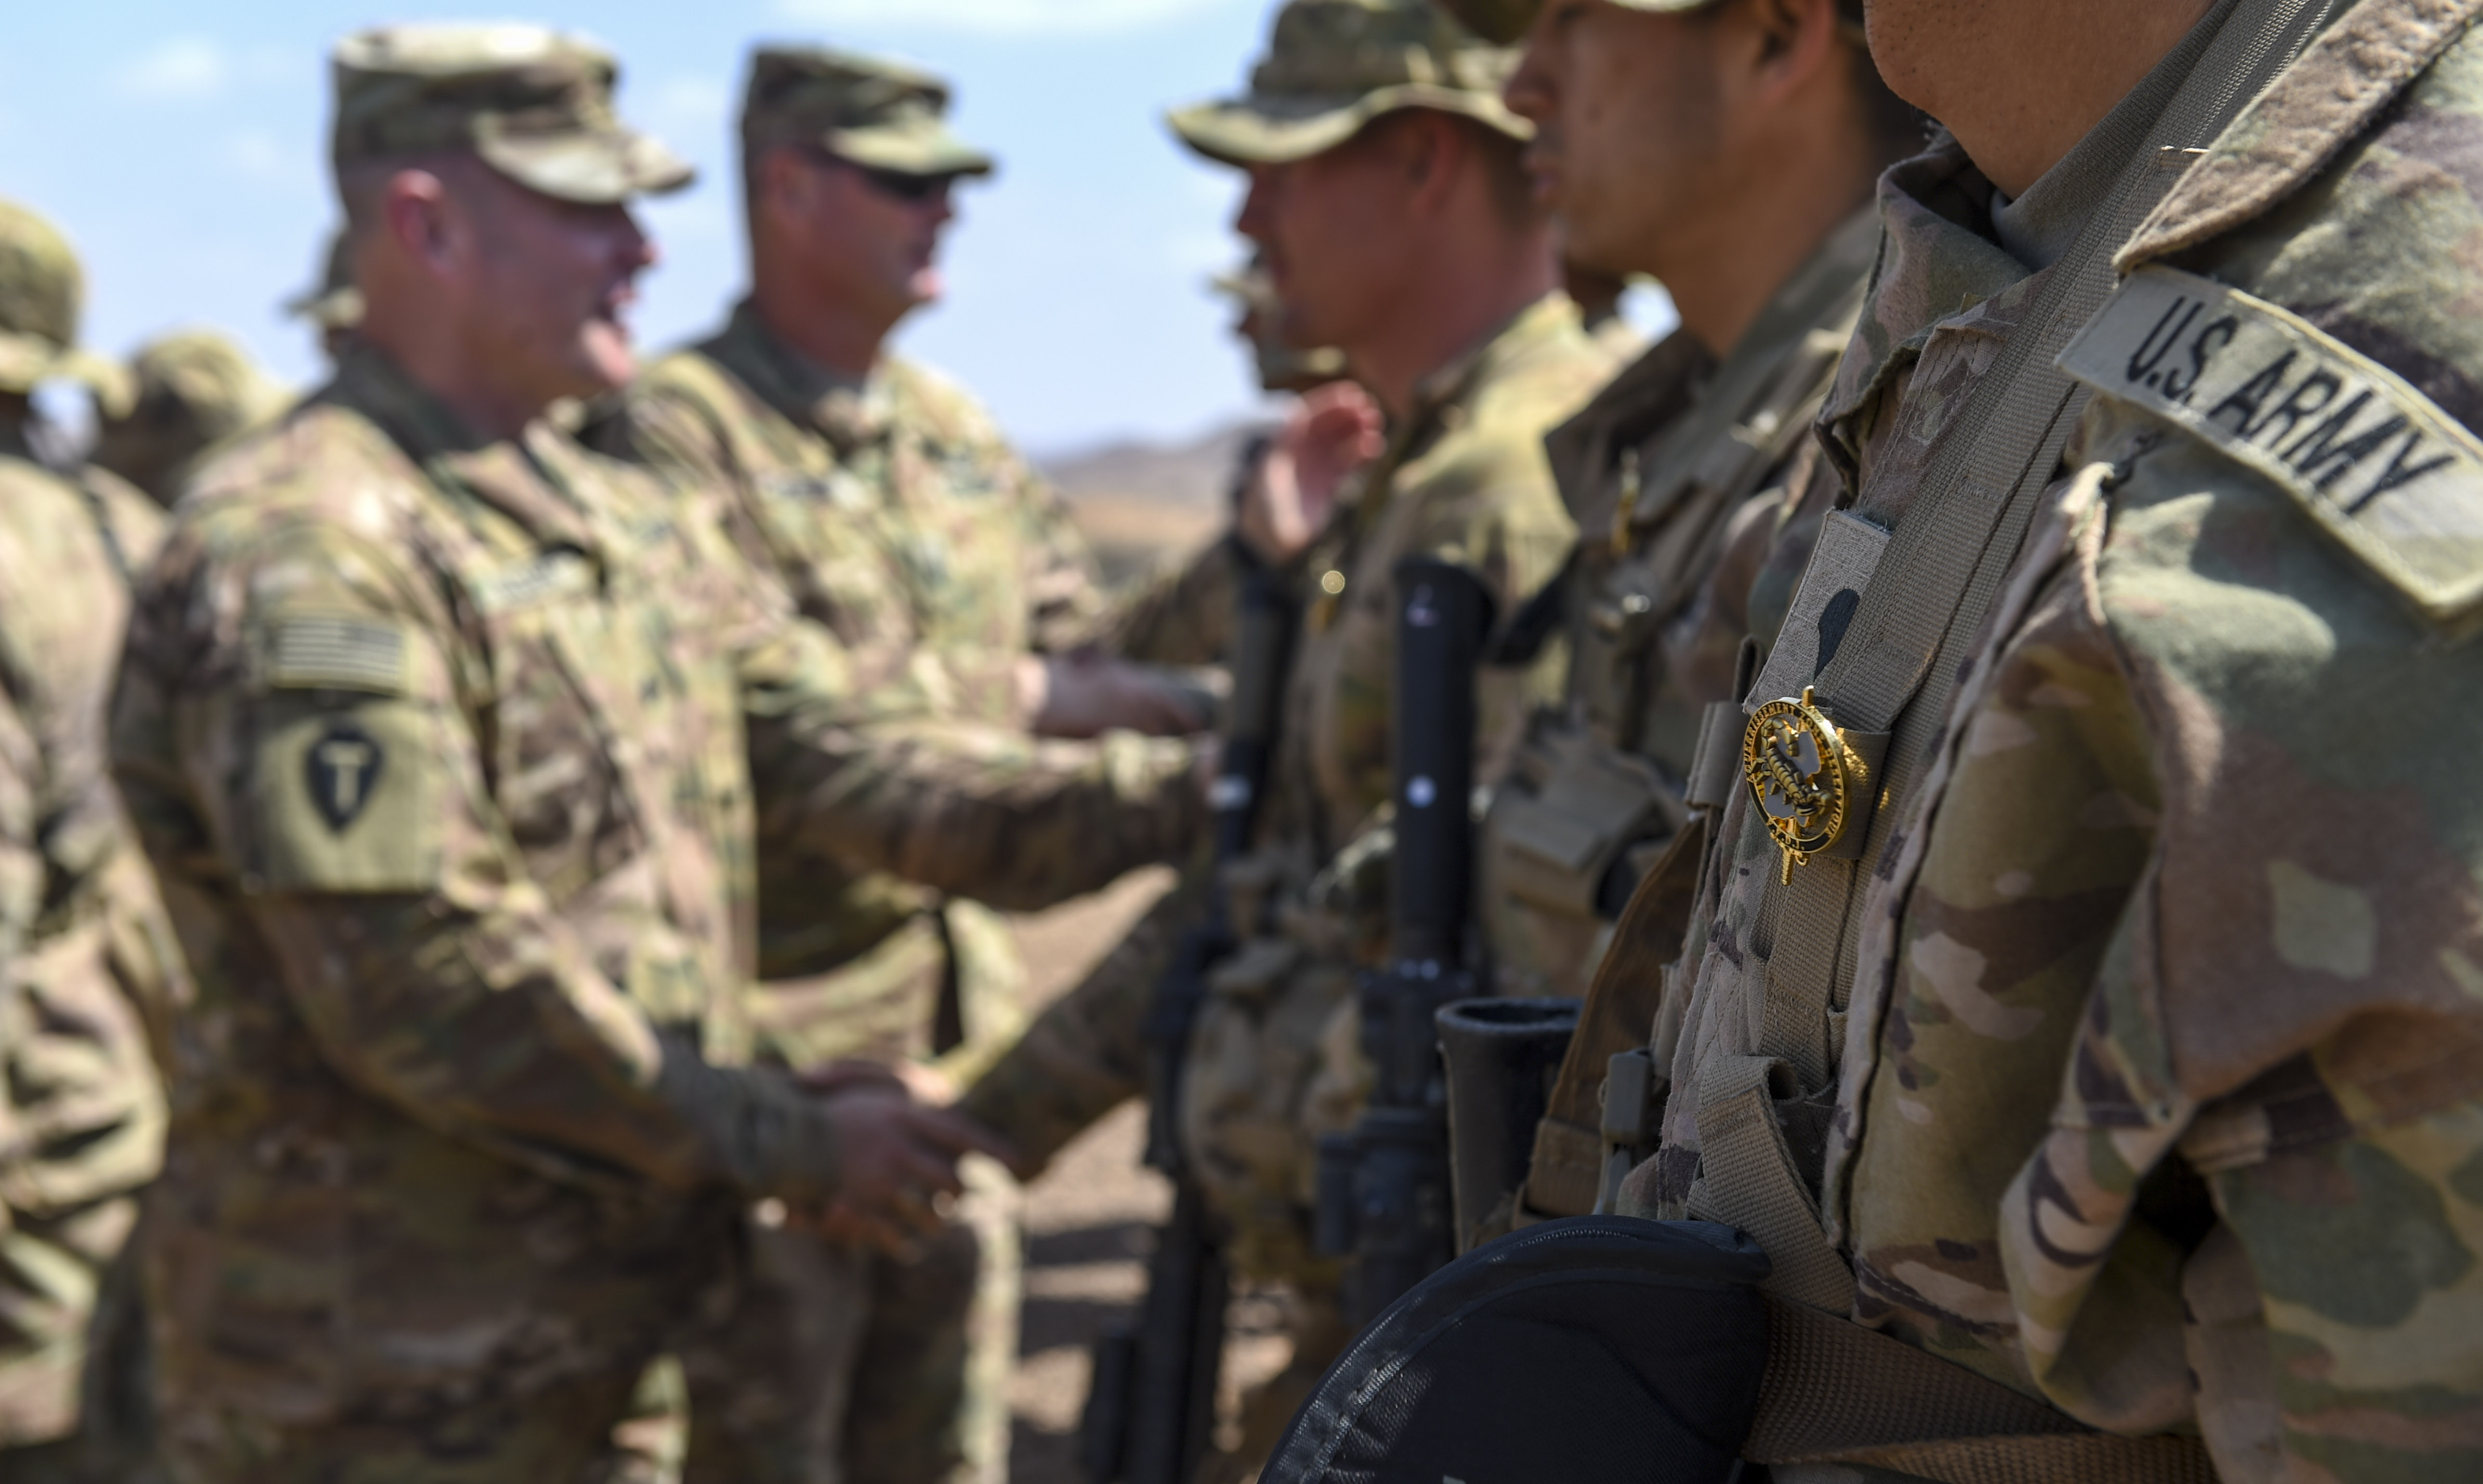 U.S. Army Lt. Col. Ross Walker, commander of 3rd Battalion, 144th Infantry Regiment, Task Force Bayonet, and Command Sgt. Maj. Clinton Petty, Task Force Bayonet command sergeant major, congratulate graduates of the French Desert Commando Course near Ali Sabieh, Djibouti, Dec. 7, 2017. U.S. service members assigned to Combined Joint Task Force - Horn of Africa participated in the 12-day course, in which they learned the fundamentals of desert combat, survival, and troop movements while also bridging language and cultural barriers between French and American troops. (U.S. Air Force photo by Staff Sgt. Timothy Moore)